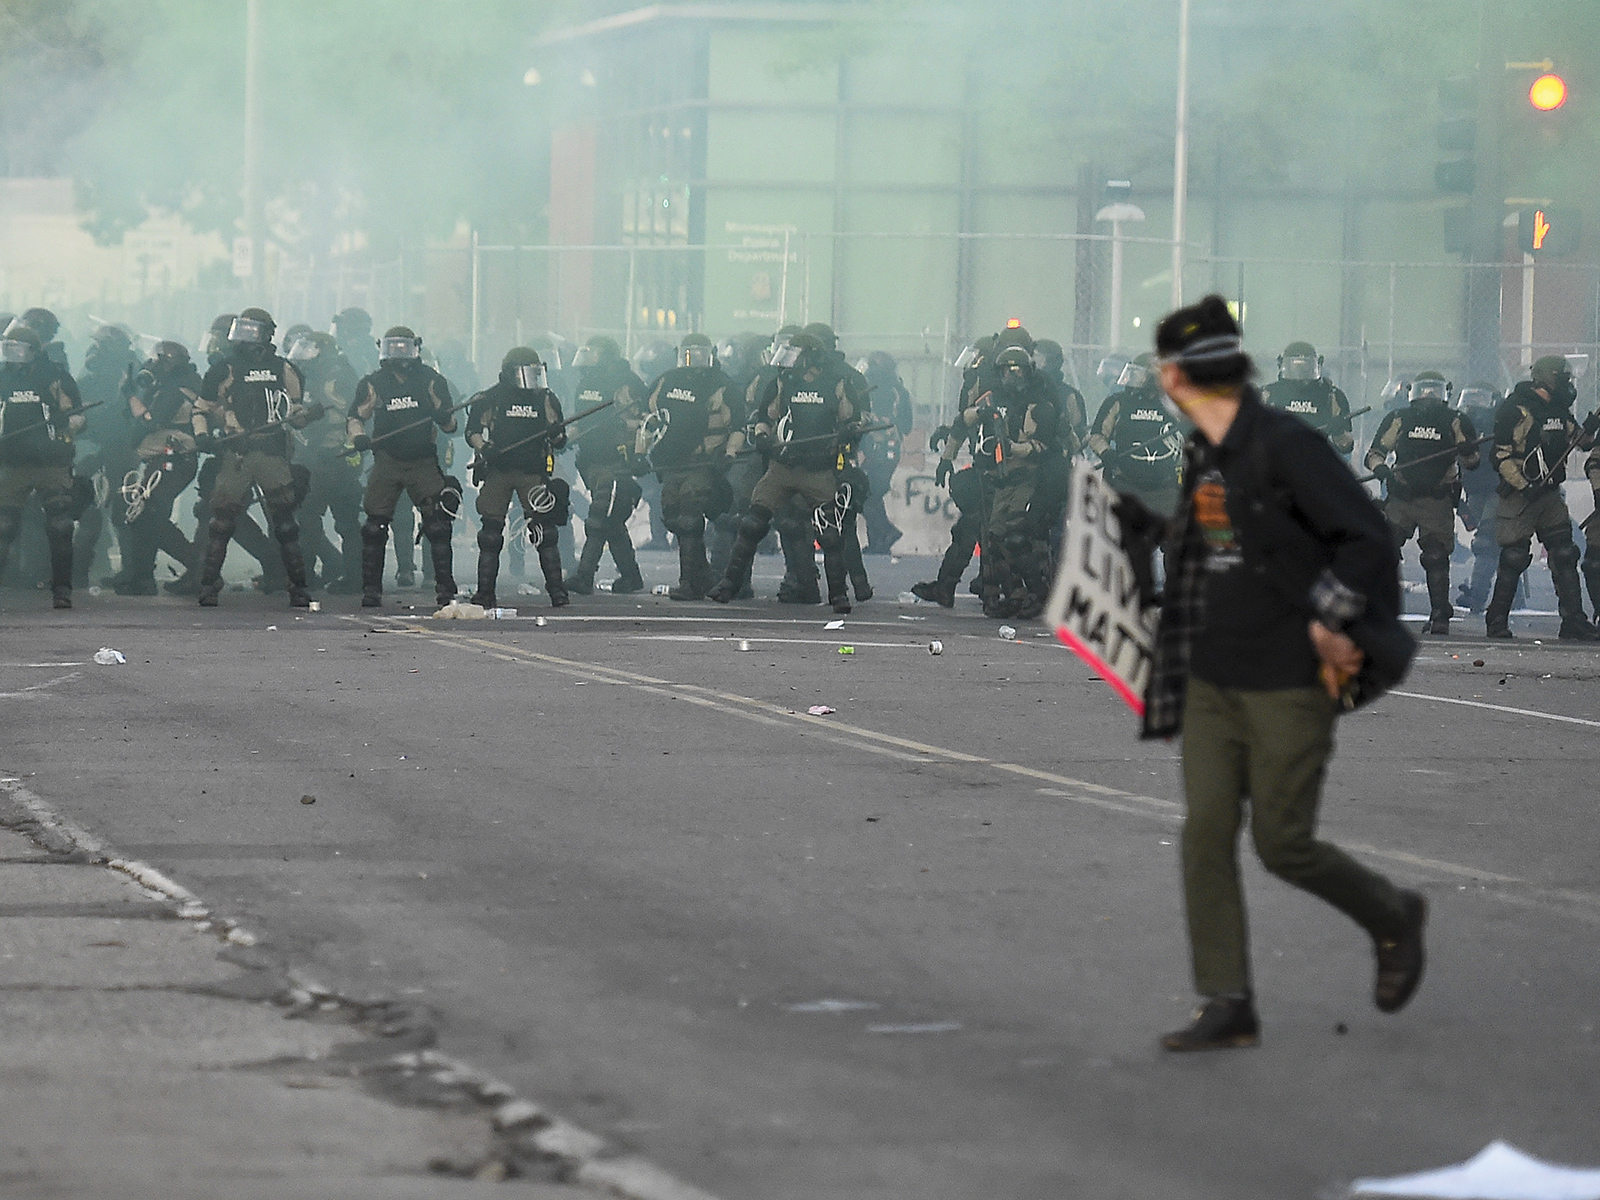 A man walking away from a line of police in riot gear